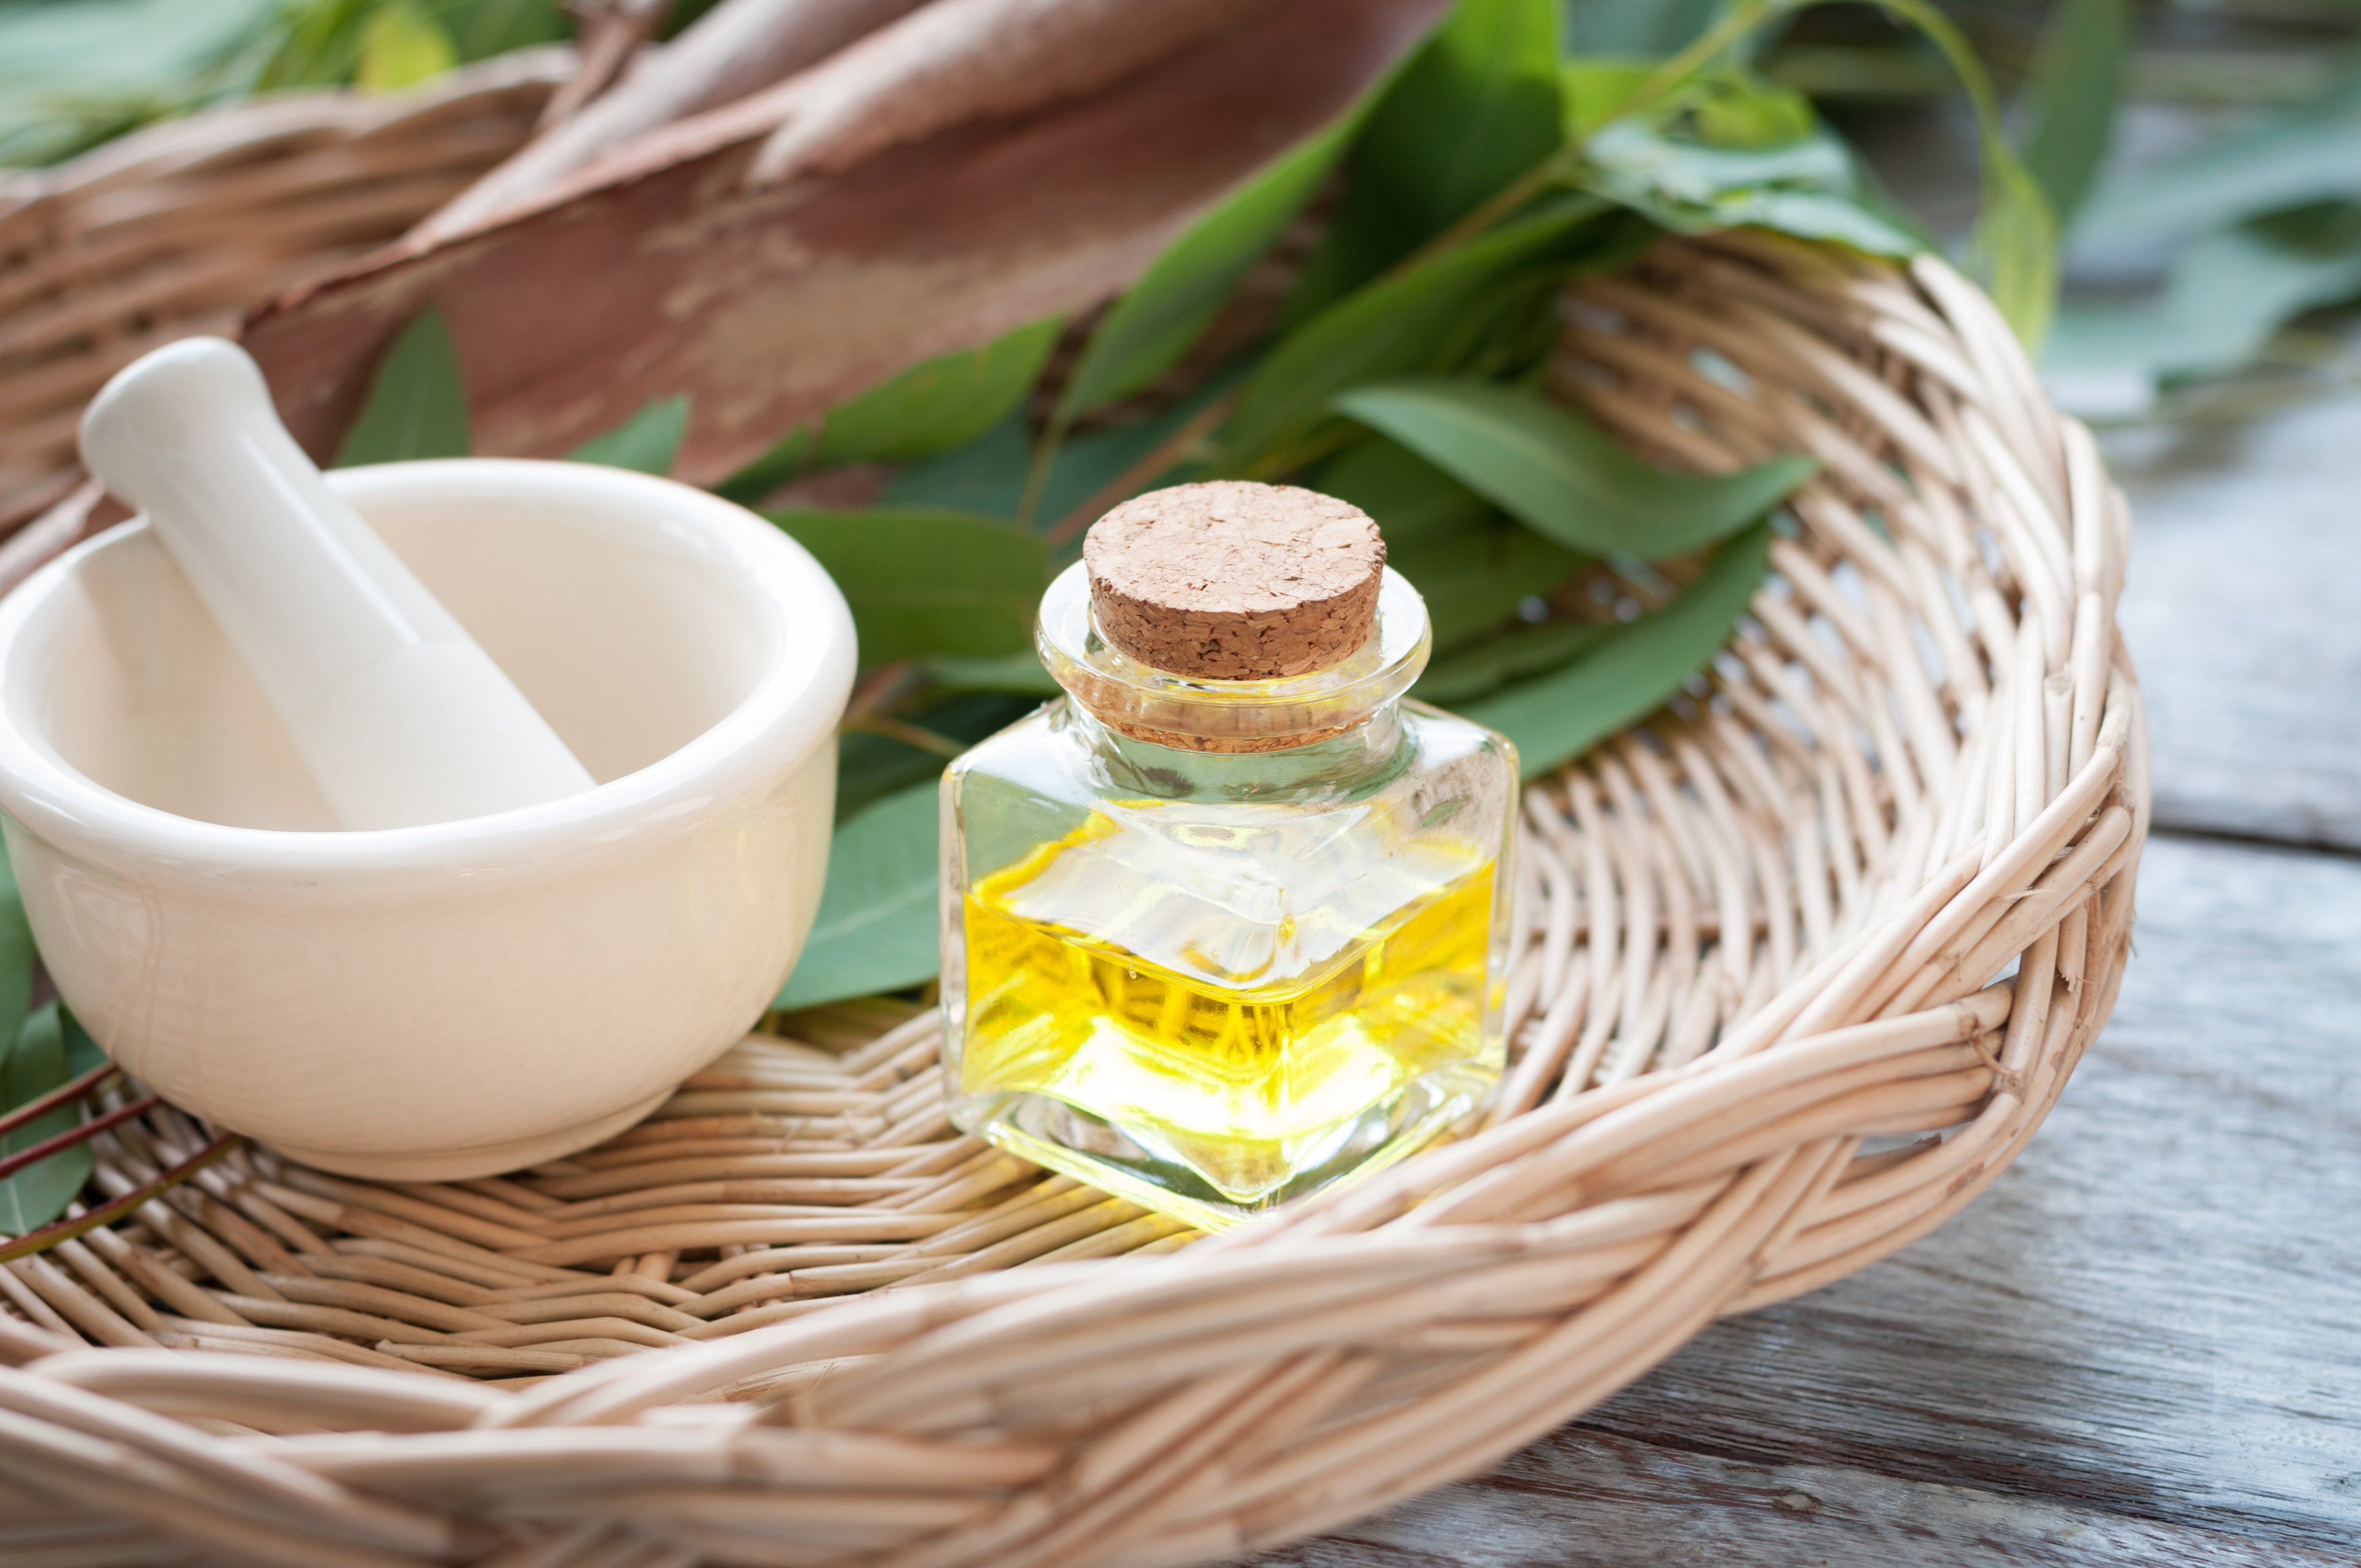 Can Eucalyptus Oil Be Dangerous? | Healthy Eating | SF Gate